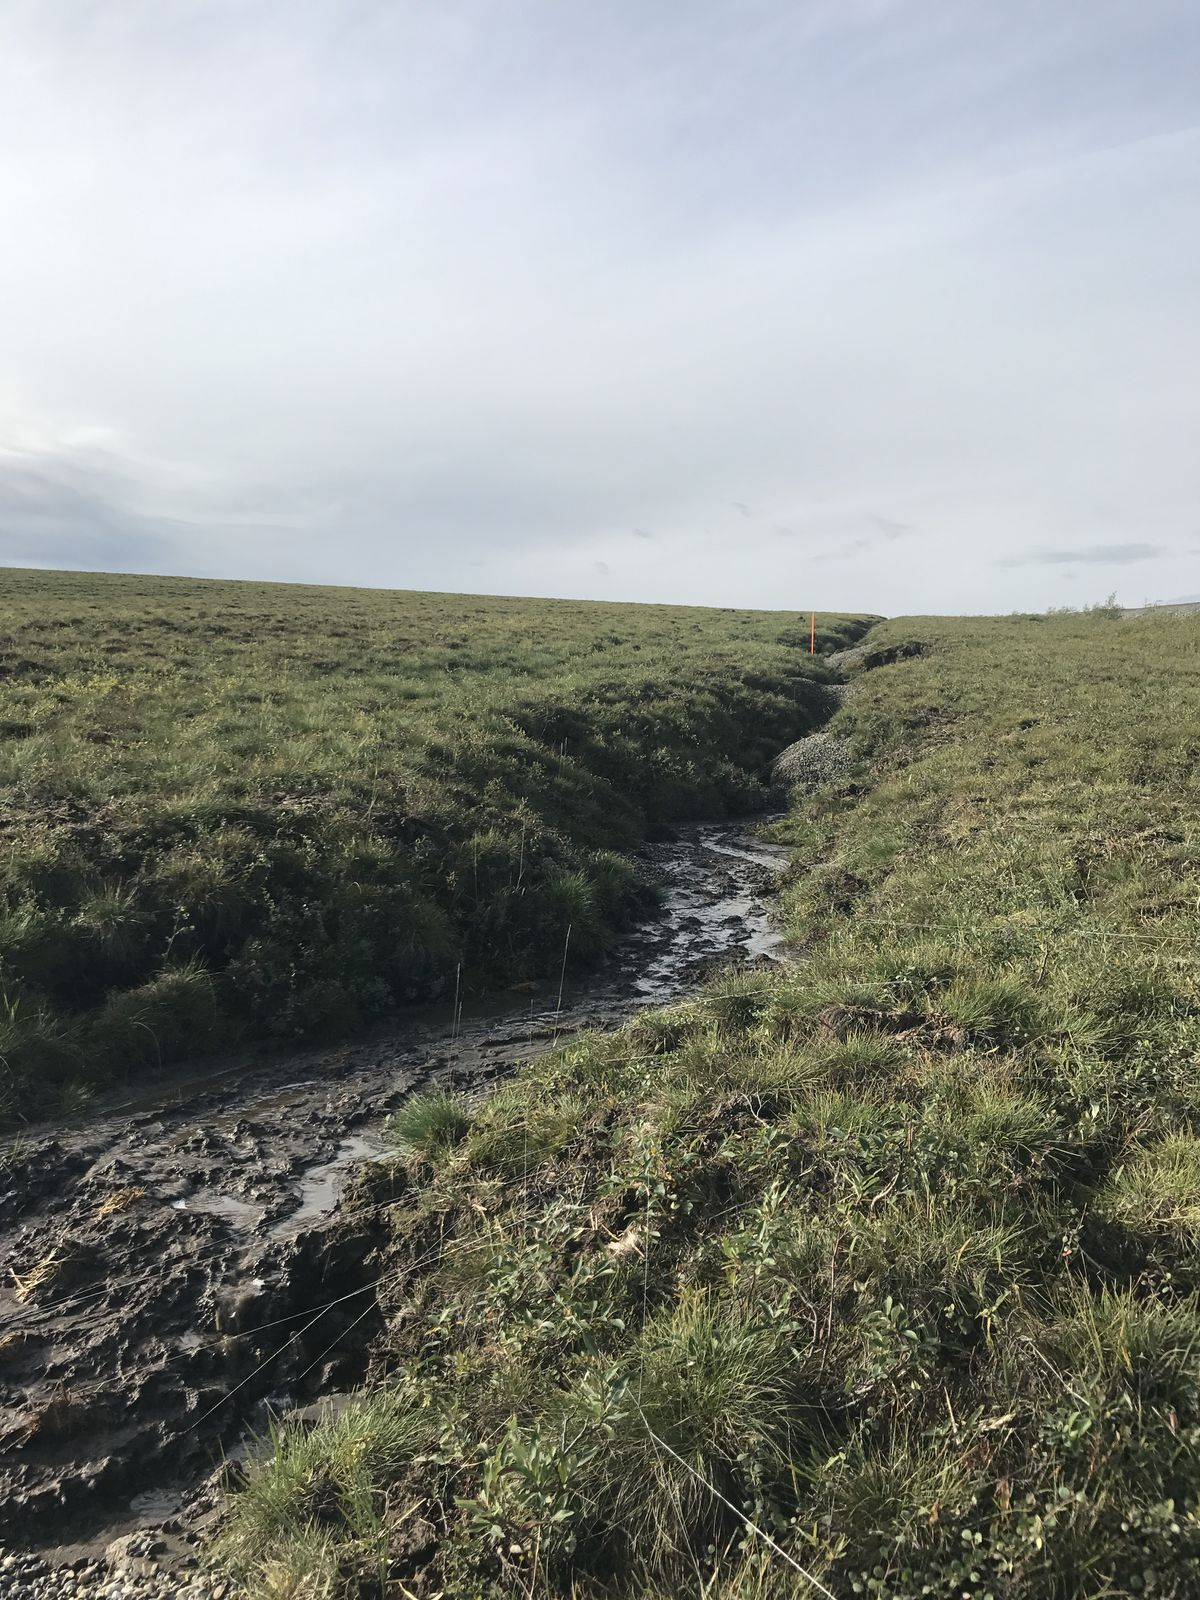 Erosion has plagued stretches of cable installed alongside the Dalton Highway for two companies, GCI and Quintillion. This section is near Mile 350 of the highway, about 60 miles south of where it ends at Prudhoe Bay. (Alaska Department of Environmental Conservation)